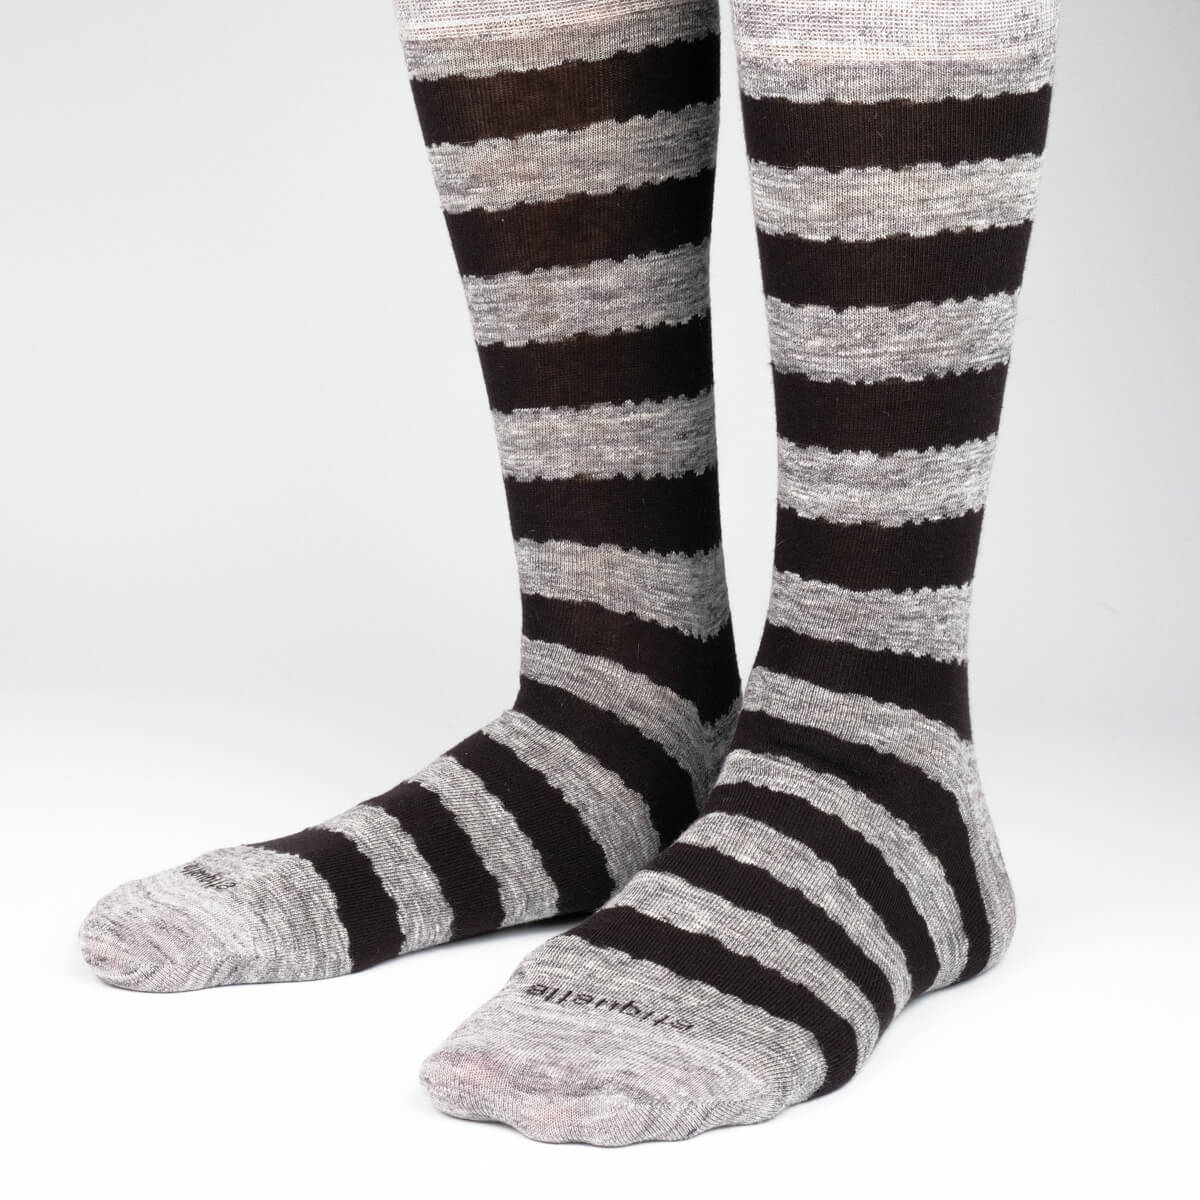 Mens Socks - All About Stripes Men's Socks Gift Box - Grey⎪Etiquette Clothiers